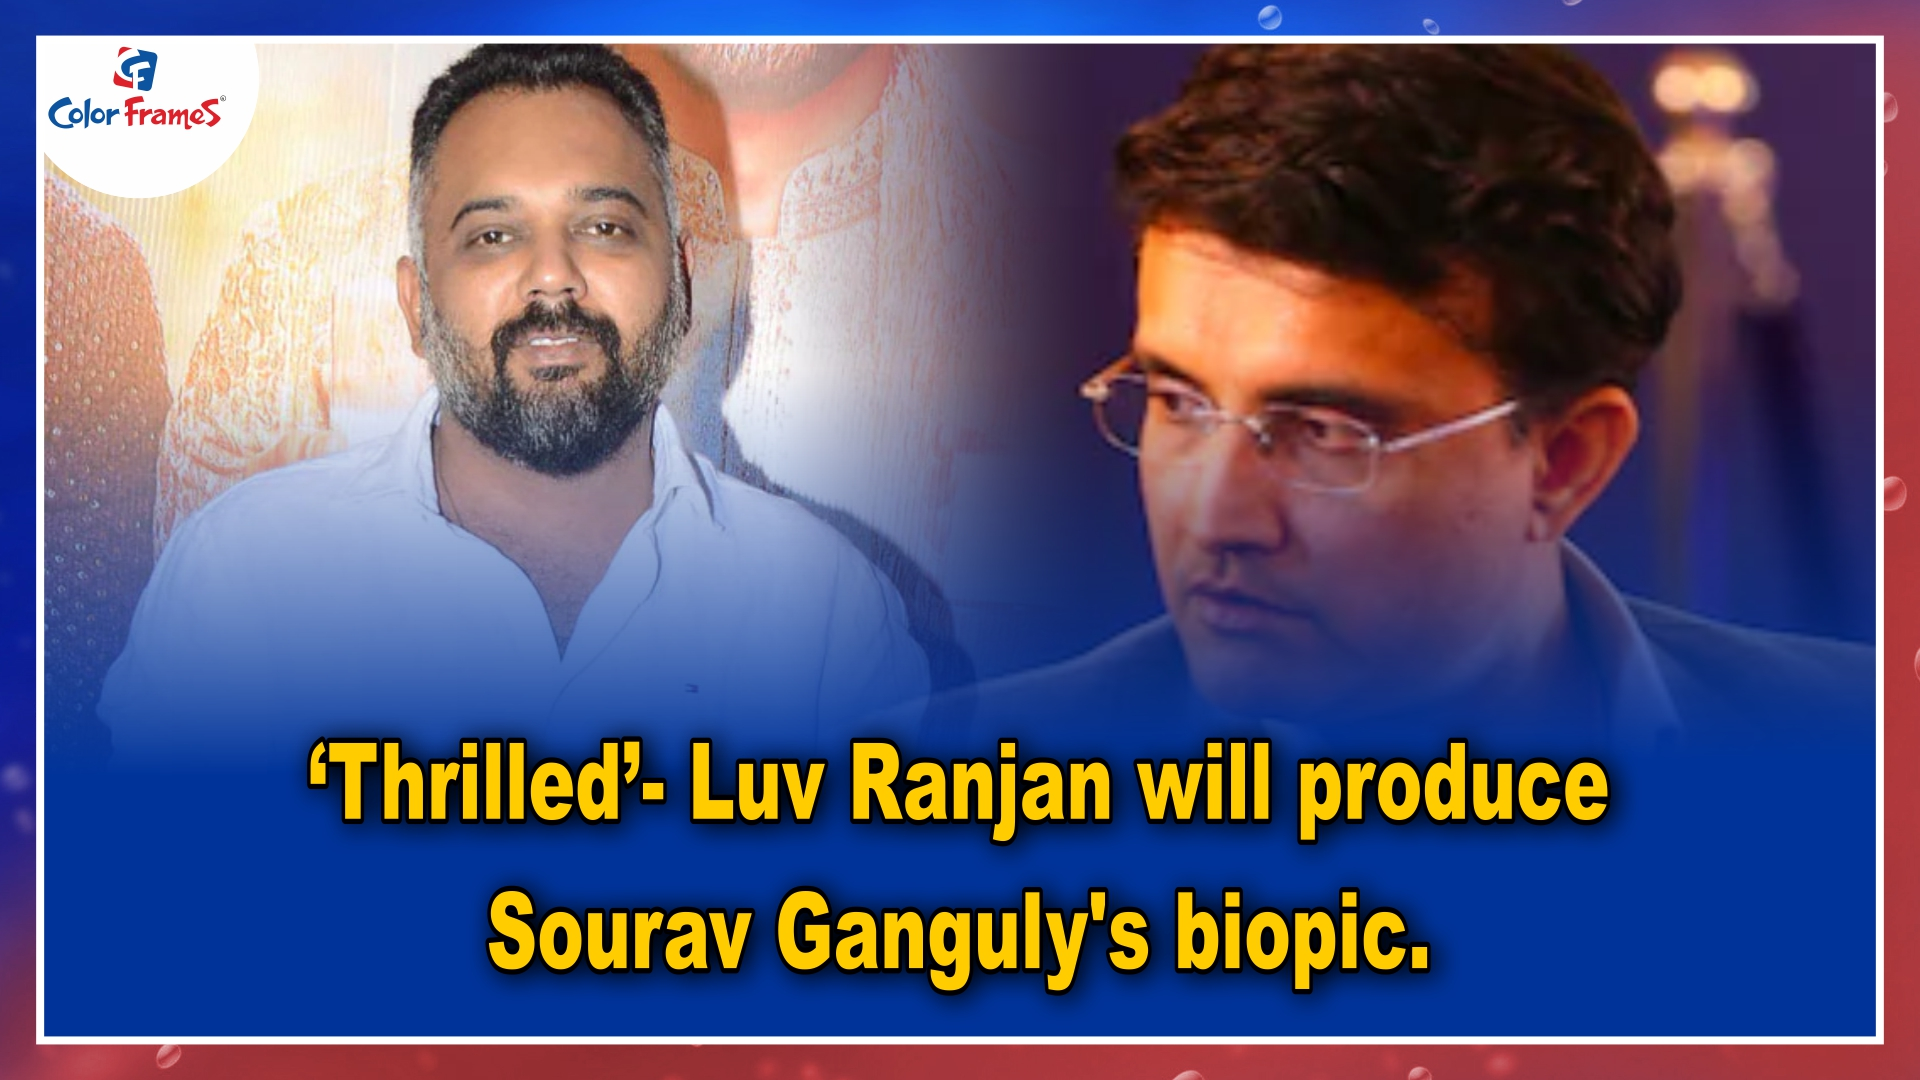 'Thrilled'- Luv Ranjan will produce Sourav Ganguly's biopic.